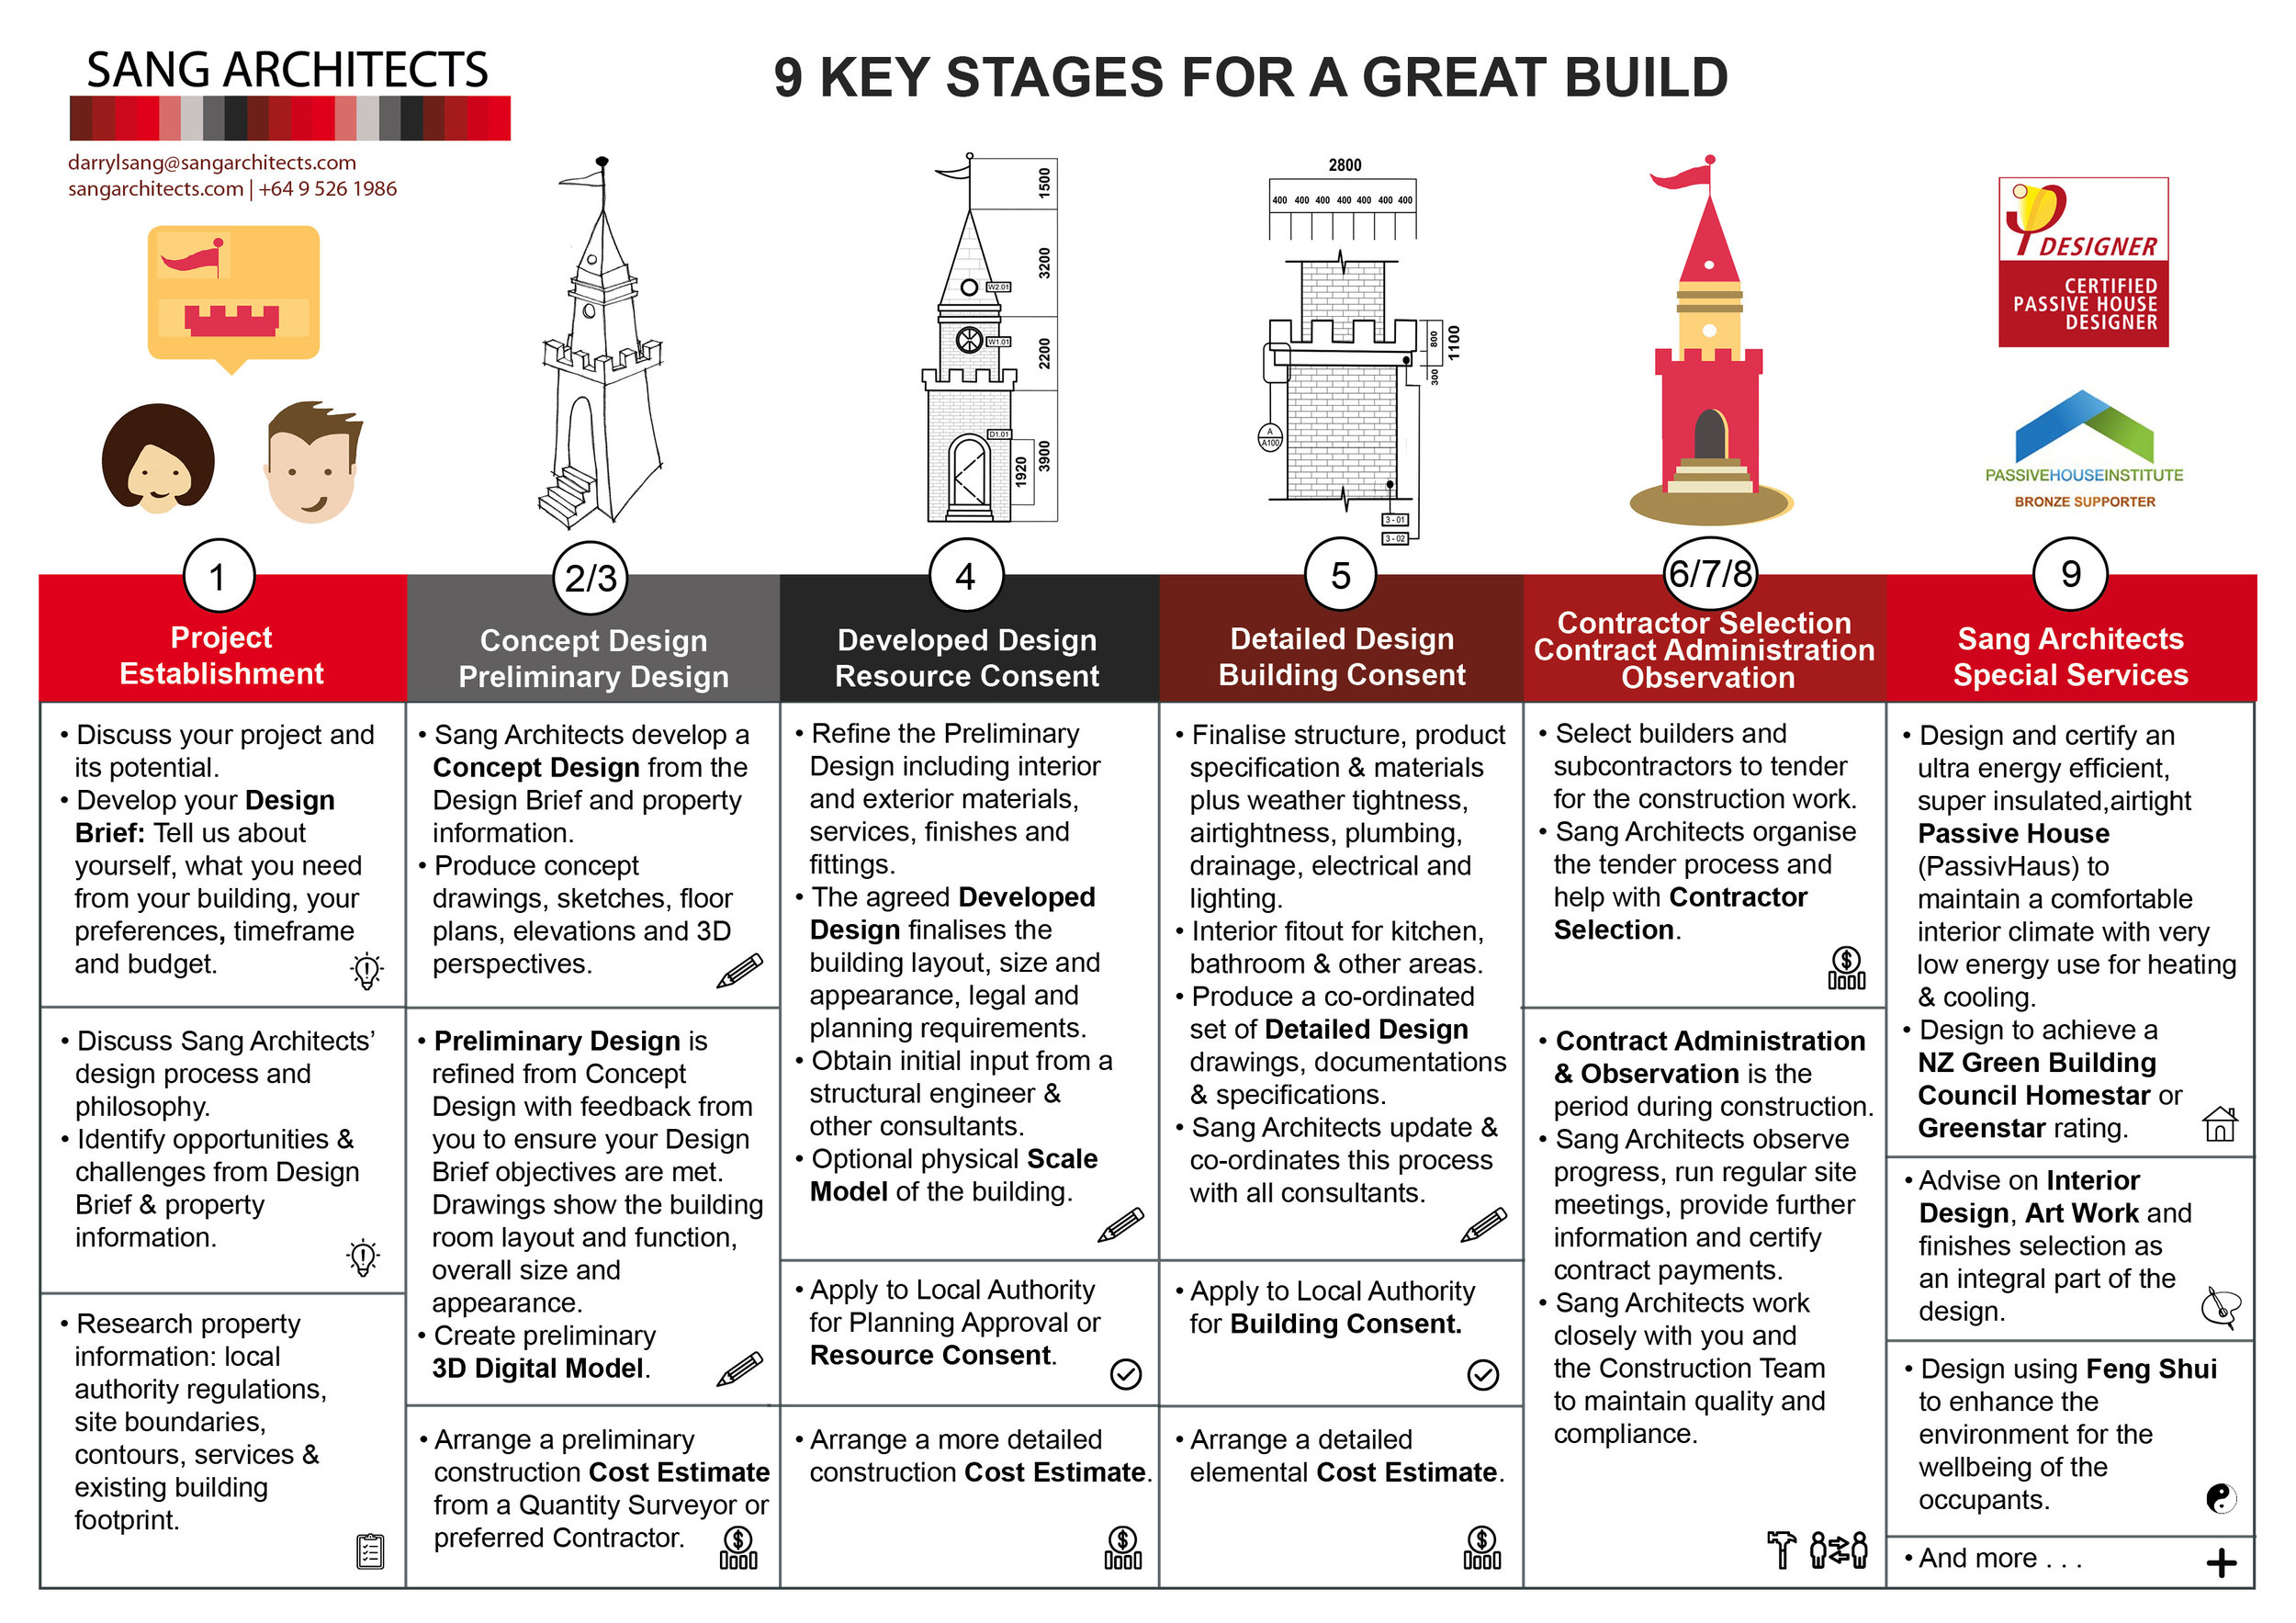 Sang Architects 8 Key Stages for a Great Build v4.jpg